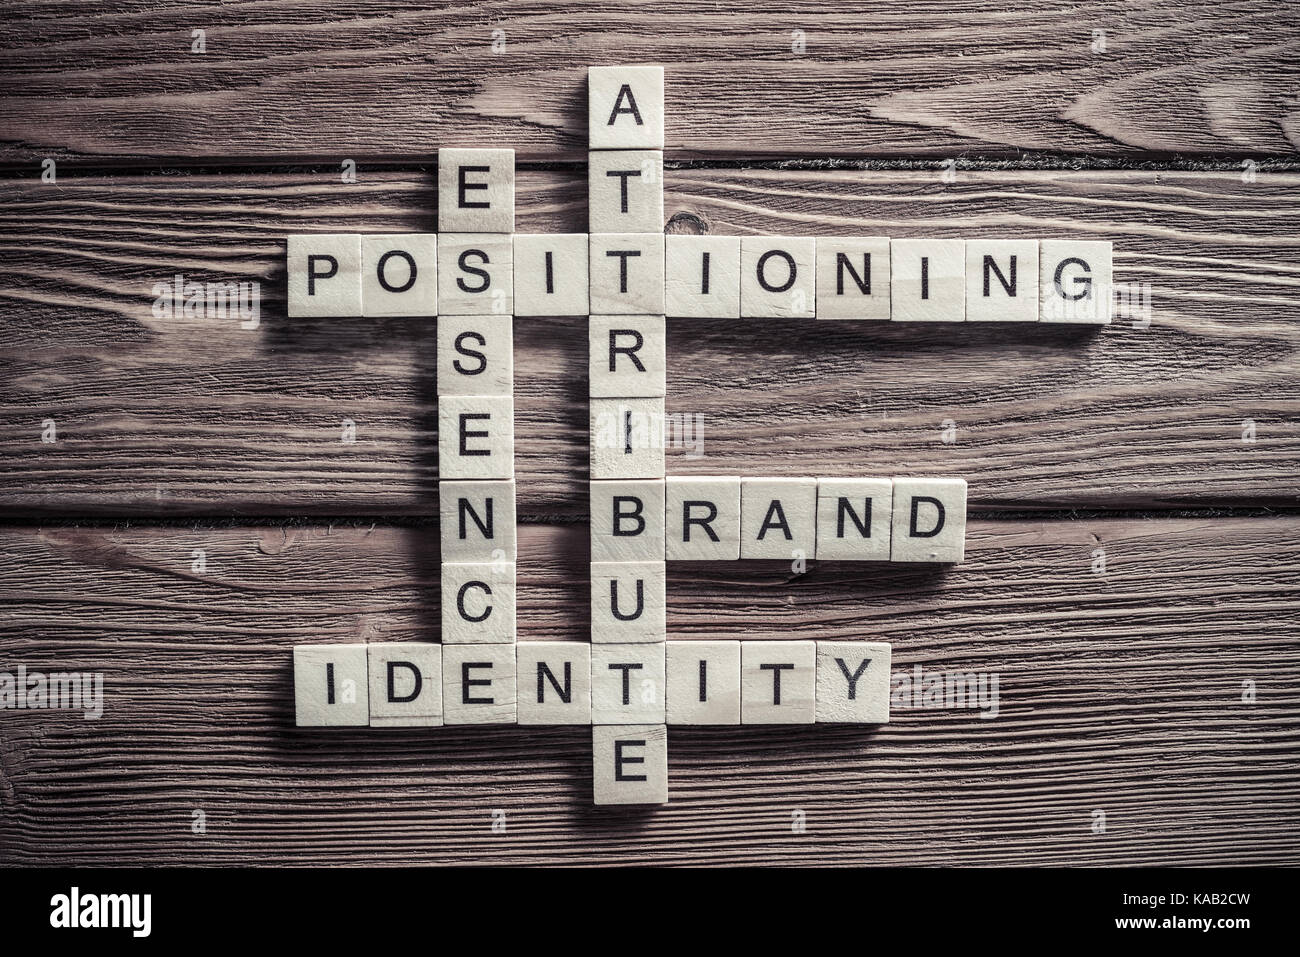 Conceptual business keywords on table with elements of game maki - Stock Image